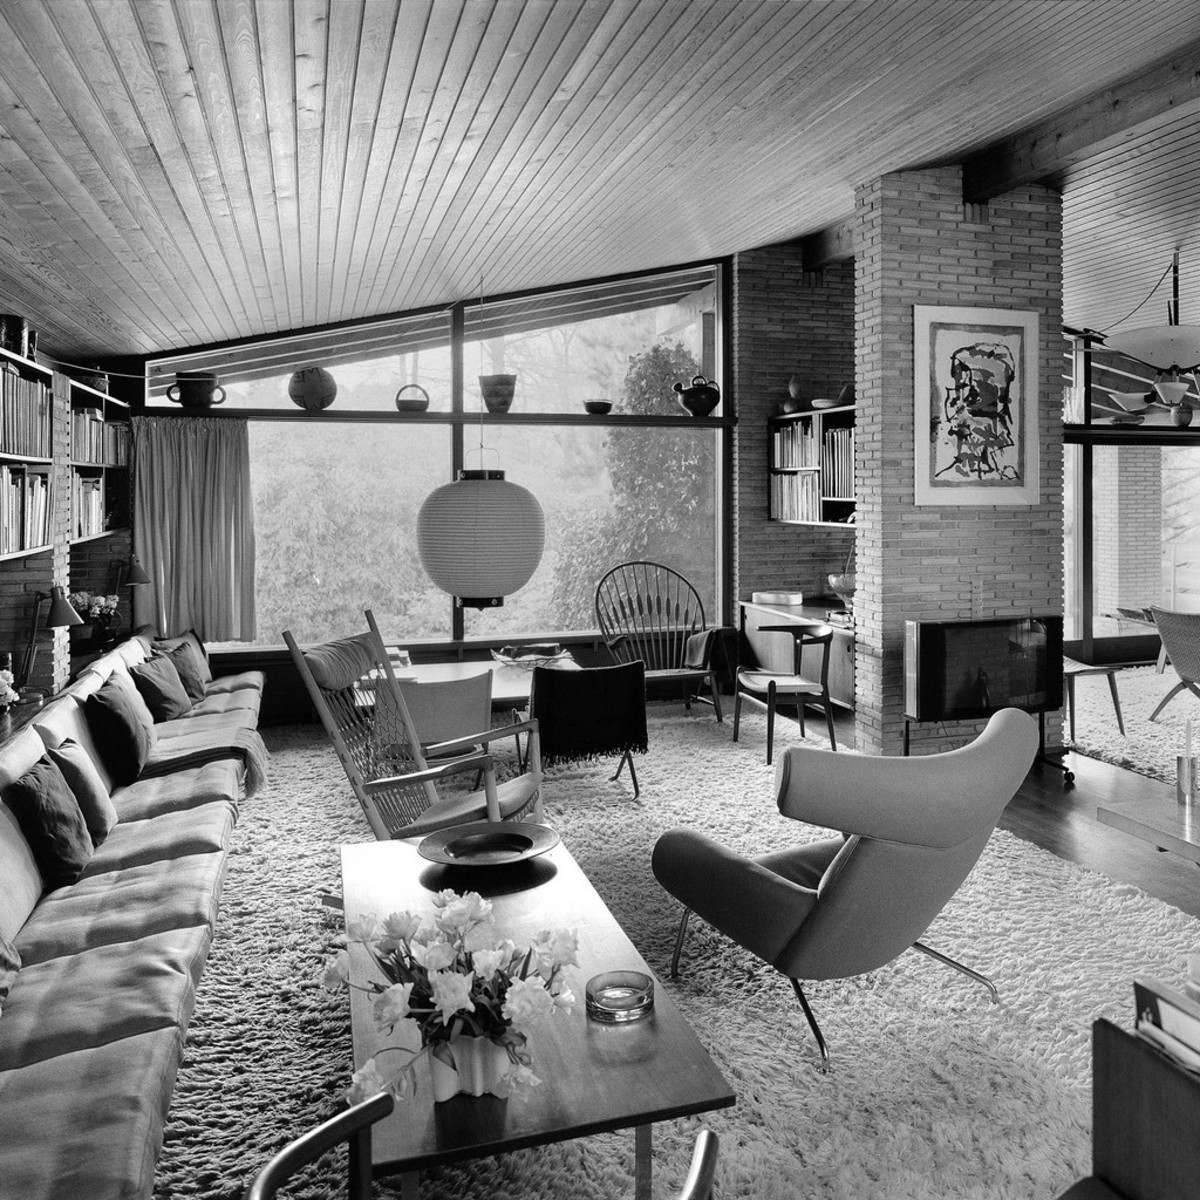 Hans Wegner's living room filled with mid-century wonders that helped to make his design work celebrated worldwide.